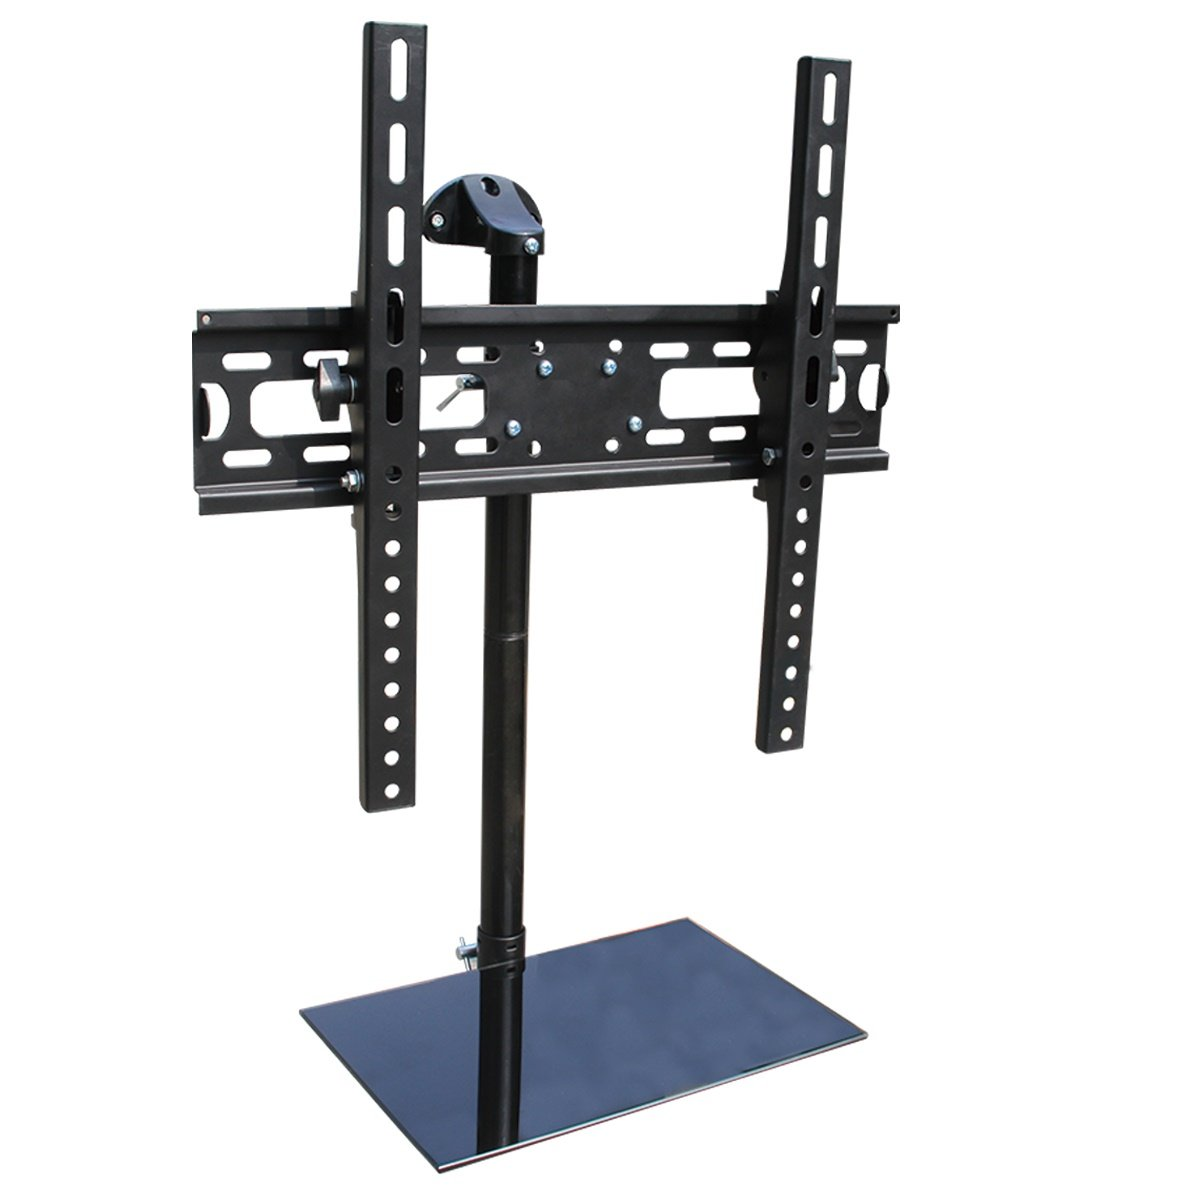 Cheap Plasma Tv Wall Stand Find Plasma Tv Wall Stand Deals On Line At Alibaba Com